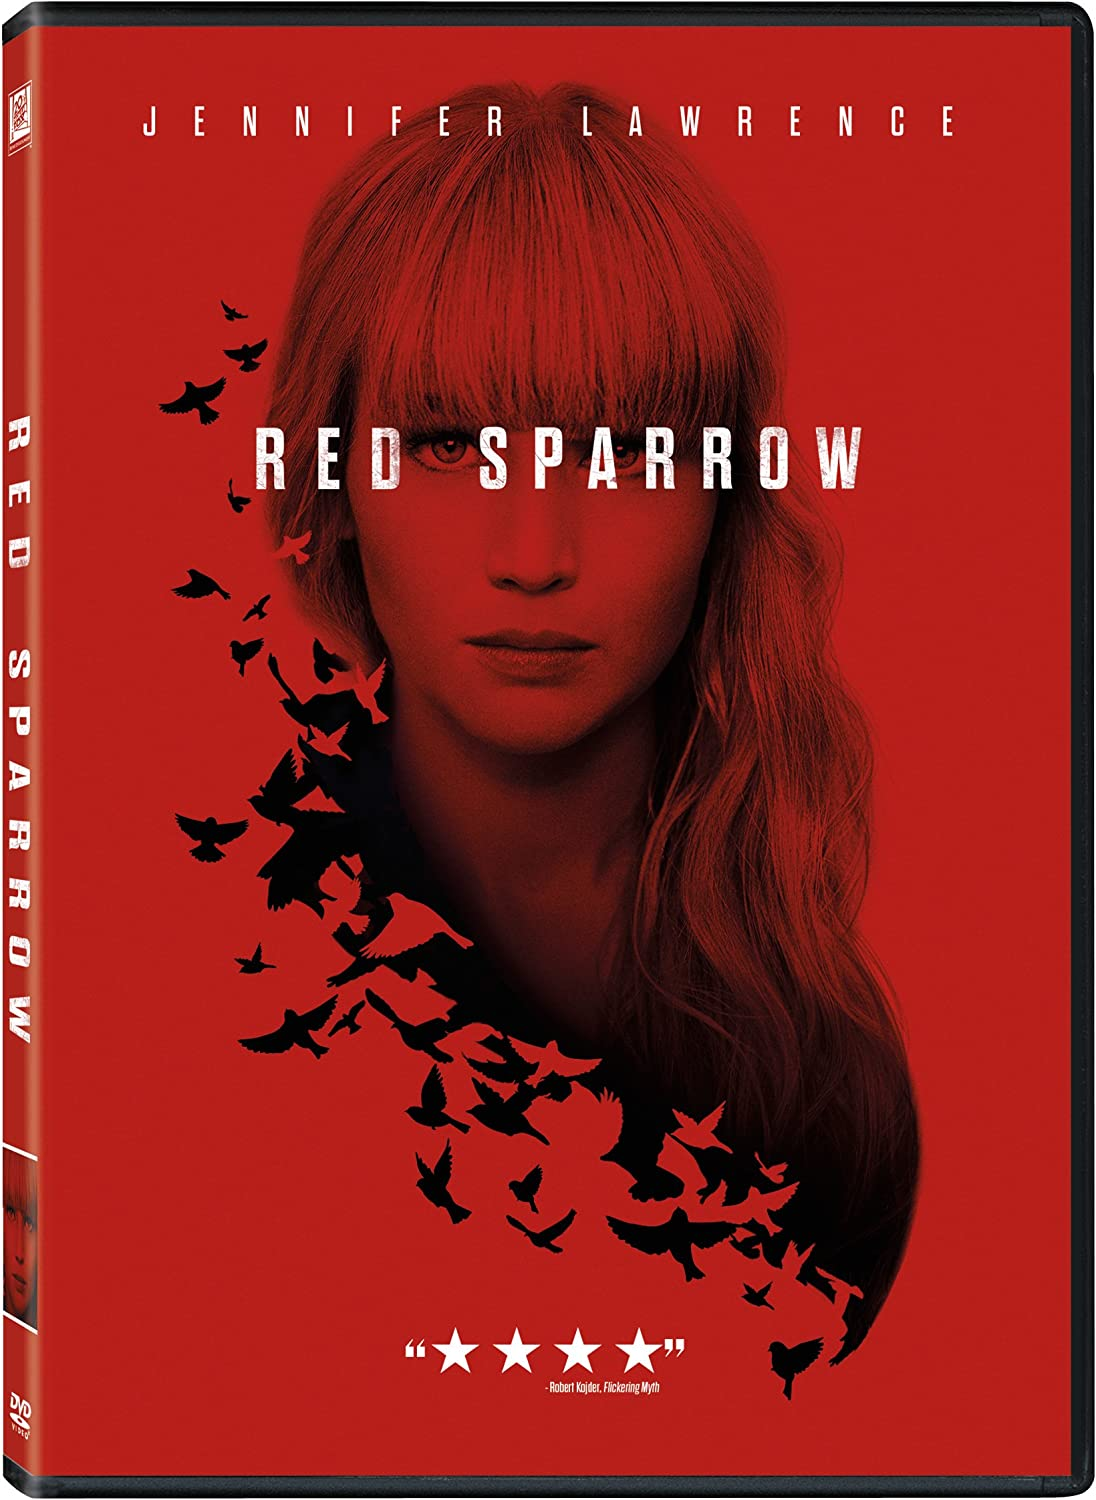 Red Sparrow: Amazon.co.uk: DVD & Blu-ray